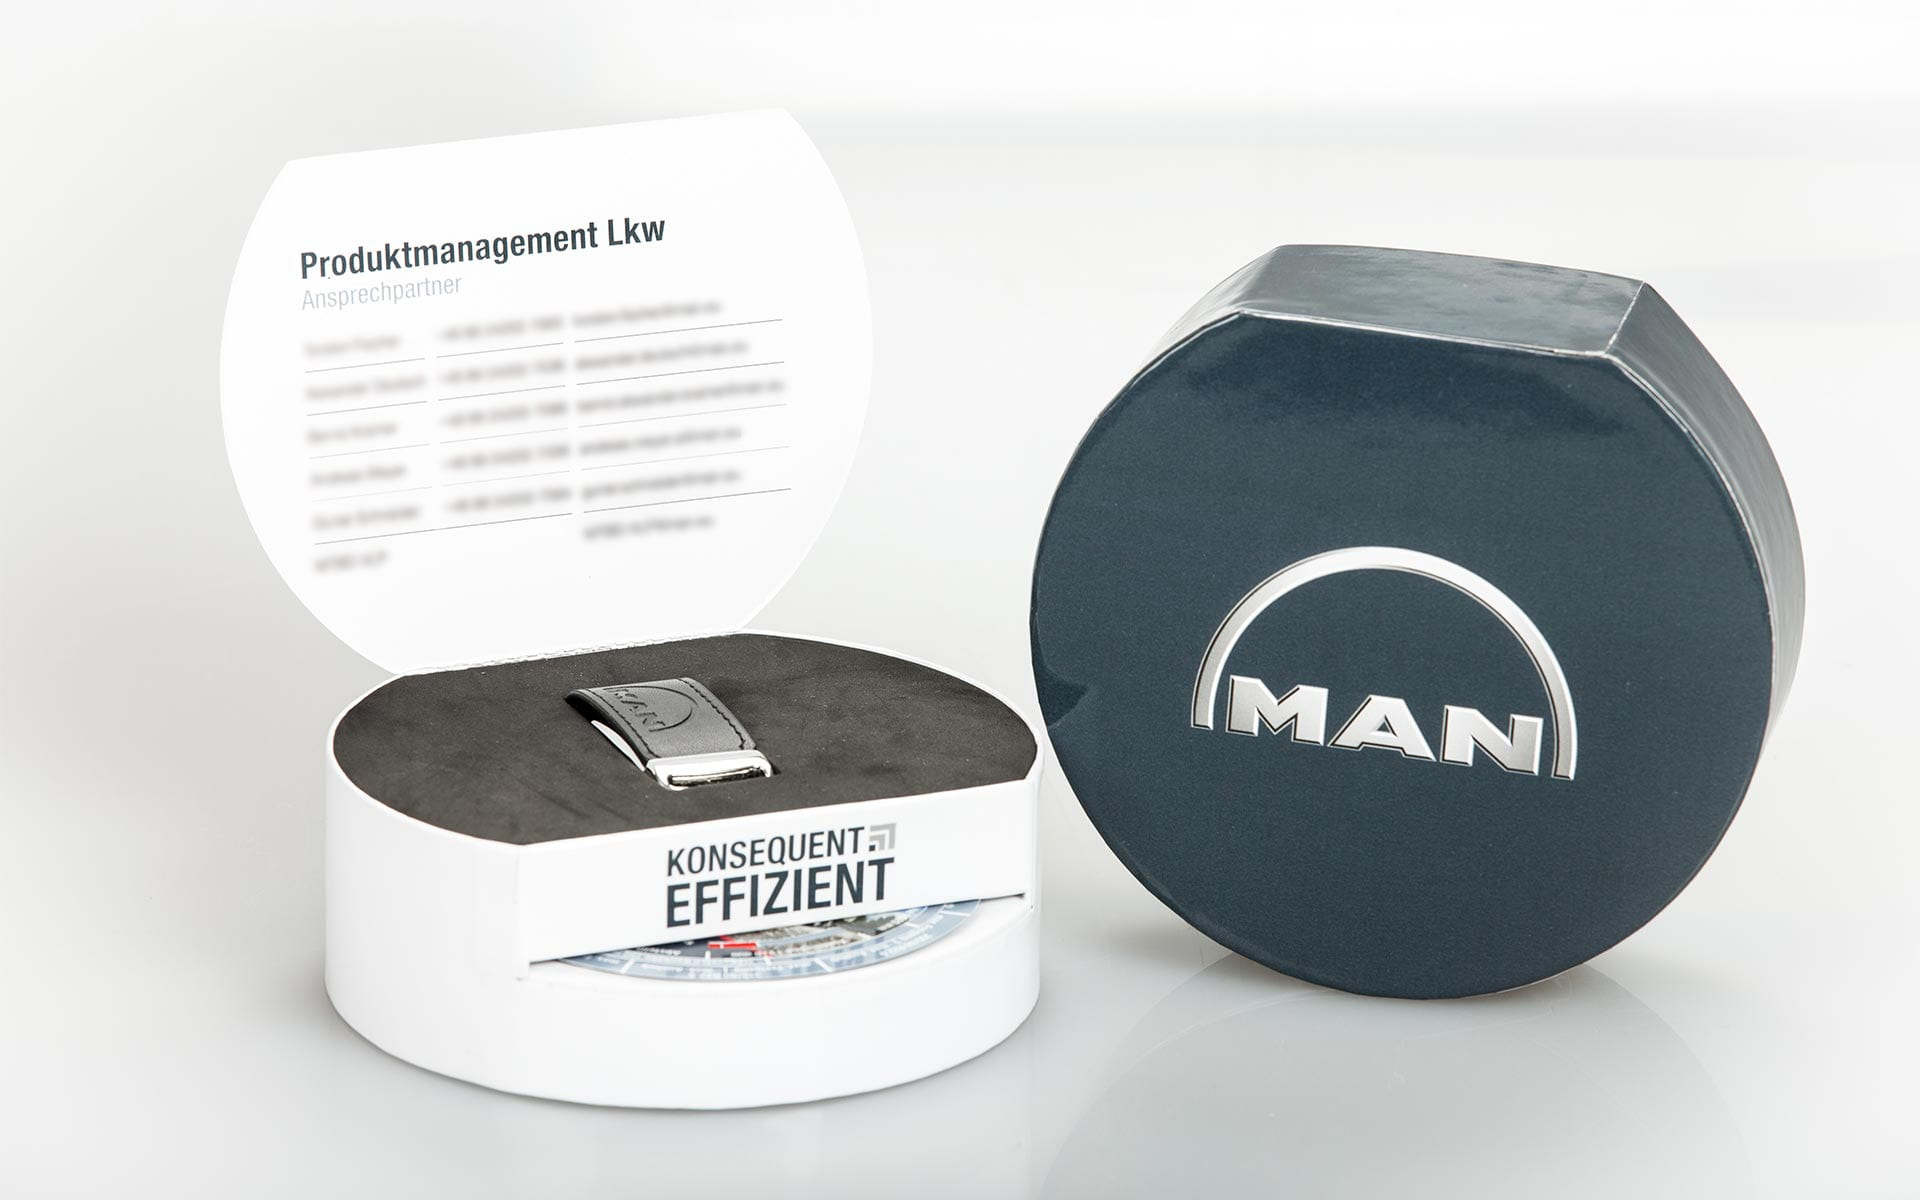 maxfath-man-truck-and-bus-truck-box-packaging-design-both-packshot